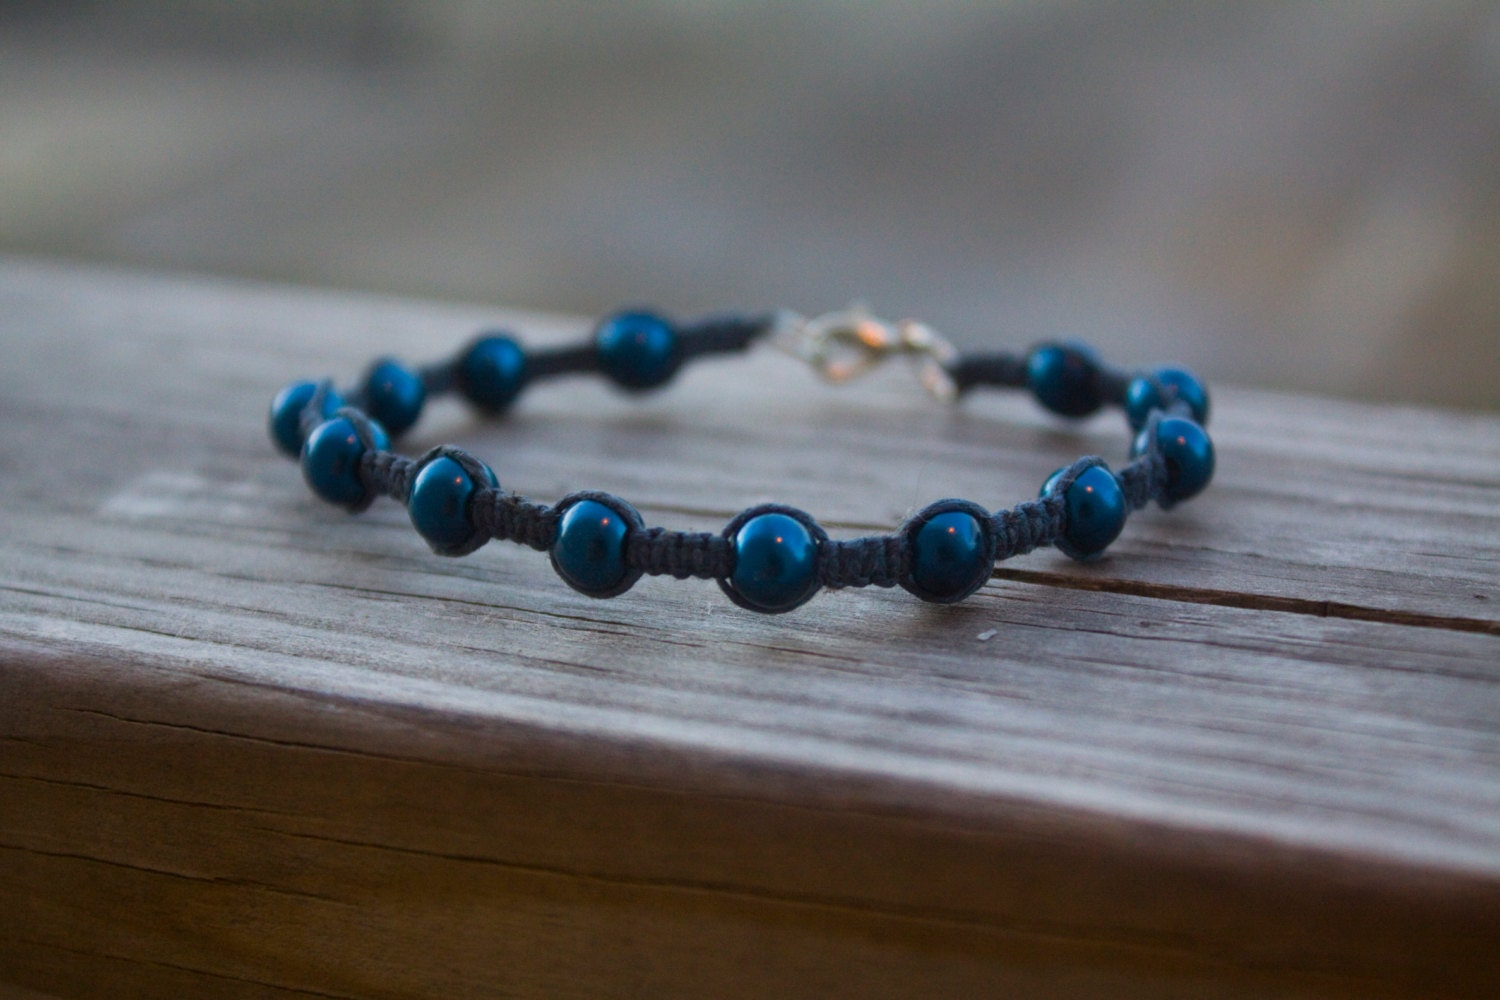 Slate Grey Hemp and Navy Blue Glass Pearl Bead Bracelet - Women's Jewelry - Pearlescent 6mm Spacer Beads - WingoWorks